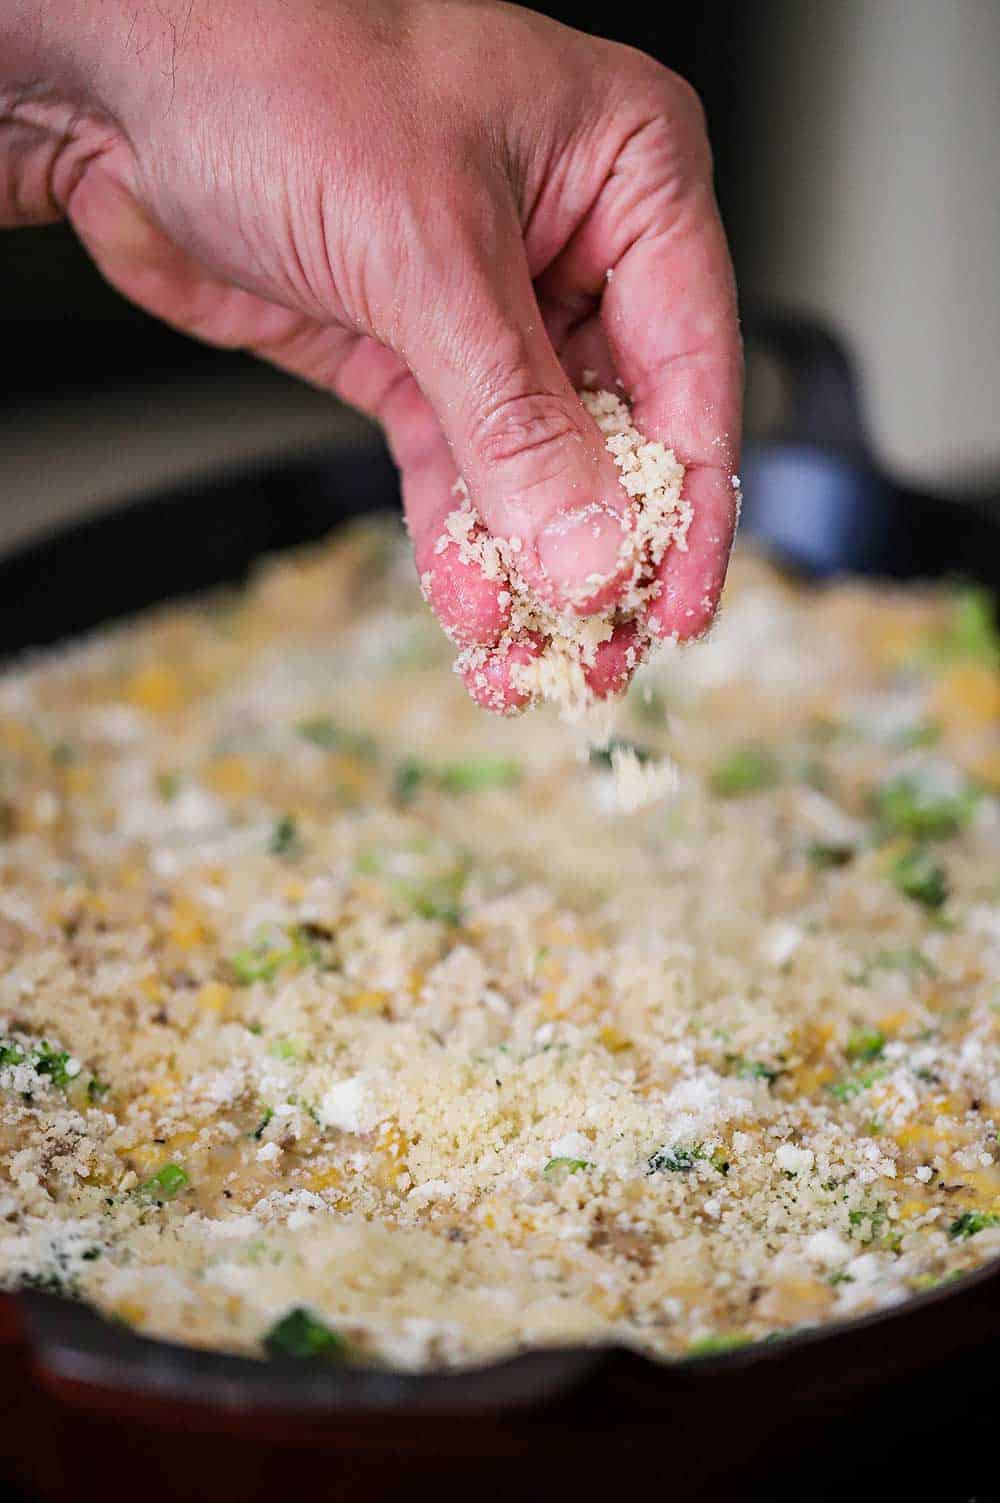 A person sprinkling bread crumbs over the top of an uncooked broccoli casserole in a large oval baking dish.